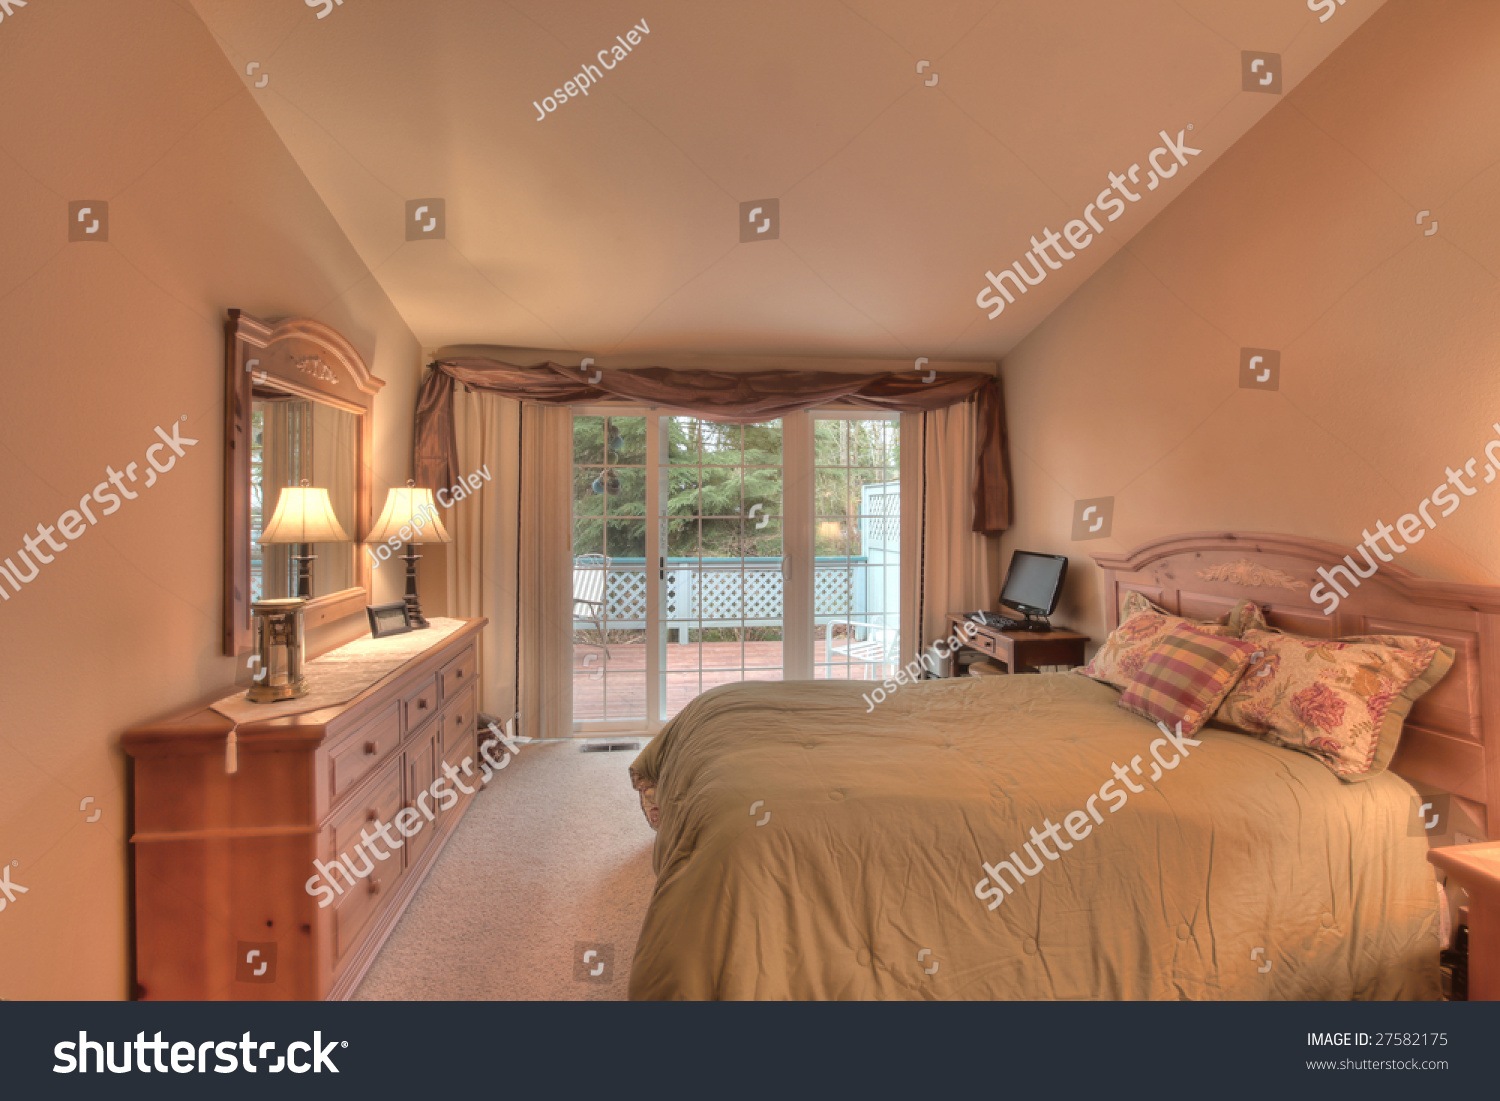 Staged bedroom in house for sale & Staged Bedroom House Sale Stock Photo (Edit Now) 27582175 - Shutterstock